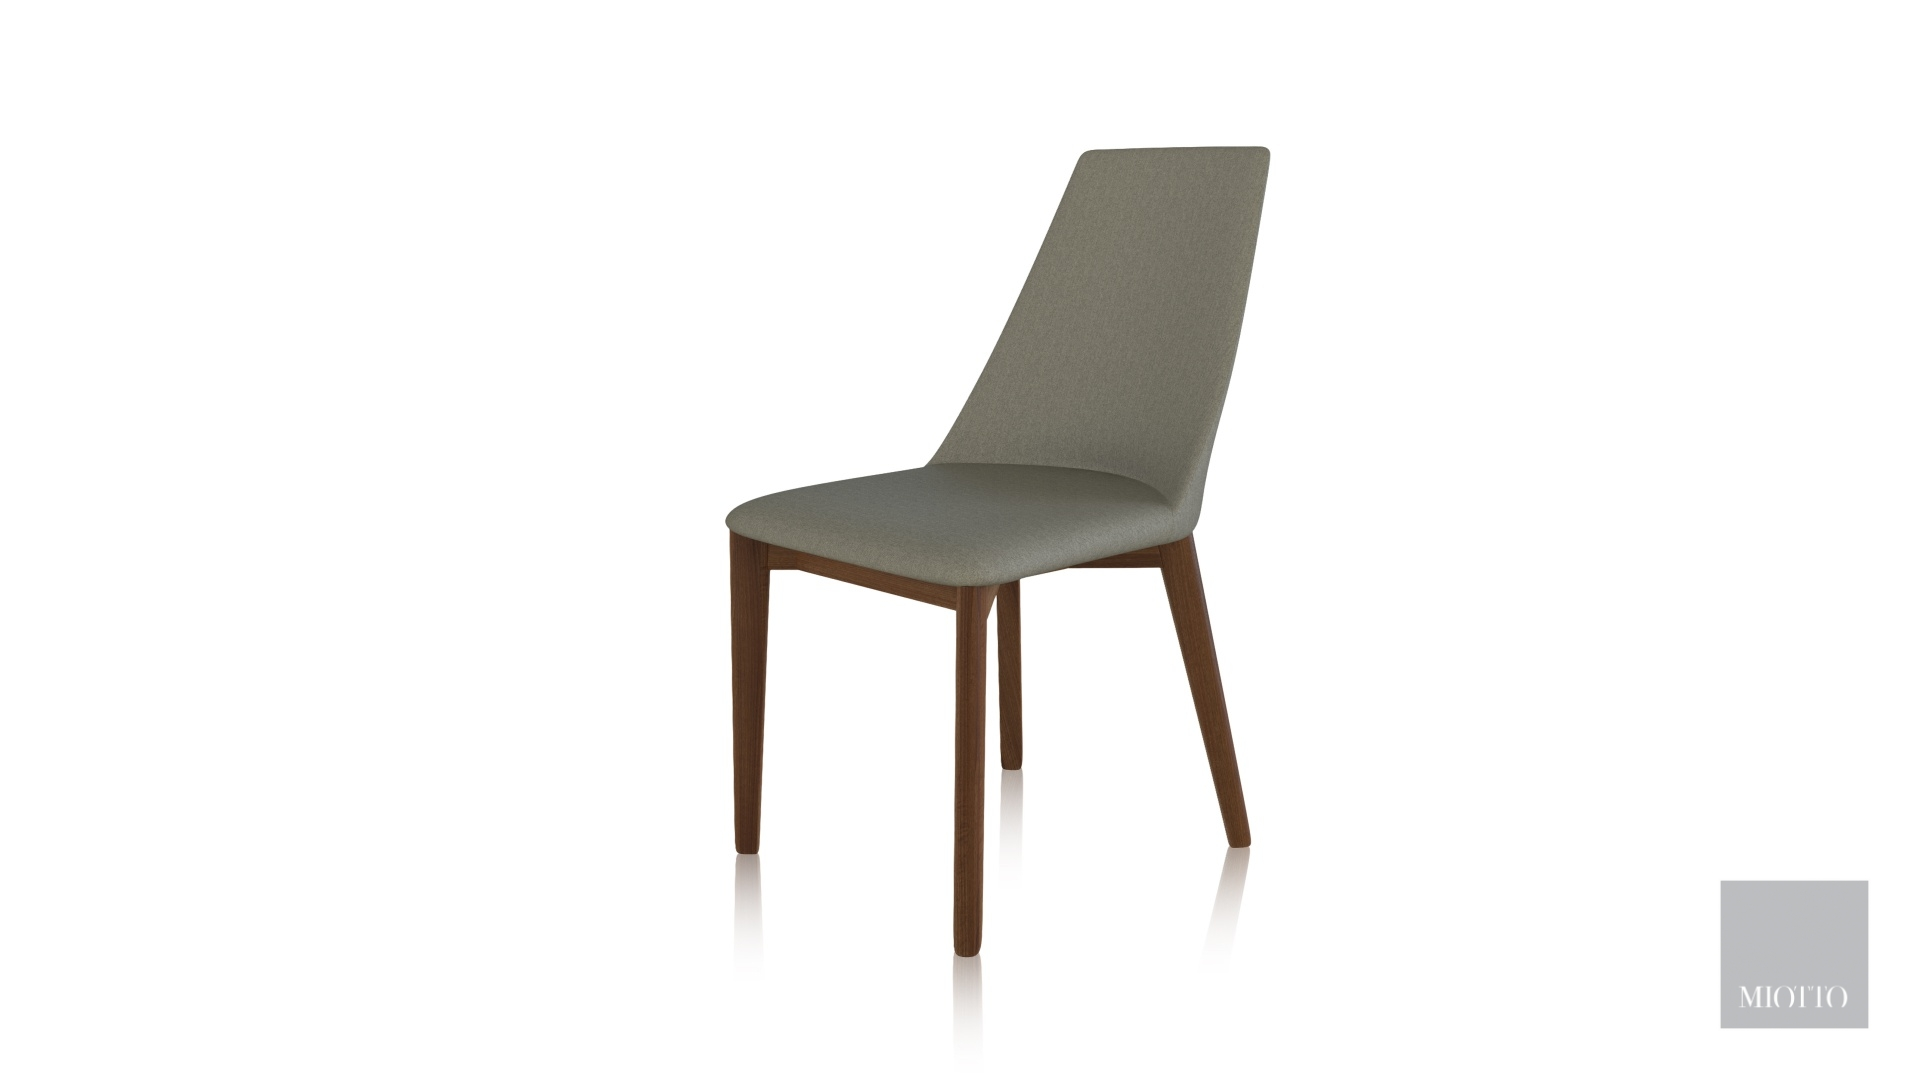 miotto_romolo DC sand front T miotto dining chair furniture